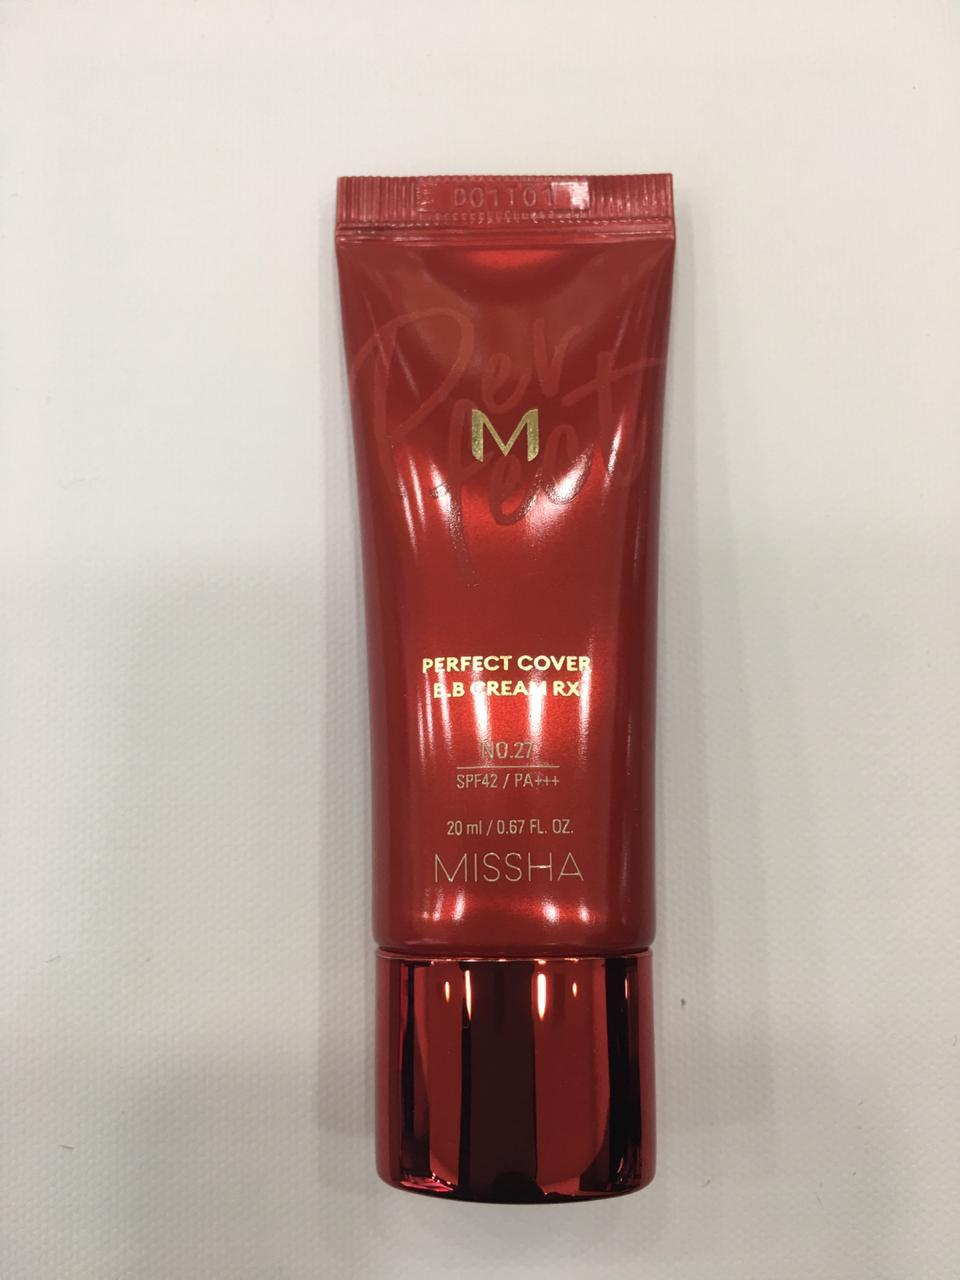 ВВ крем M Perfect Cover BB Cream RX (NO.27/HONEY BEIGE) 20ML